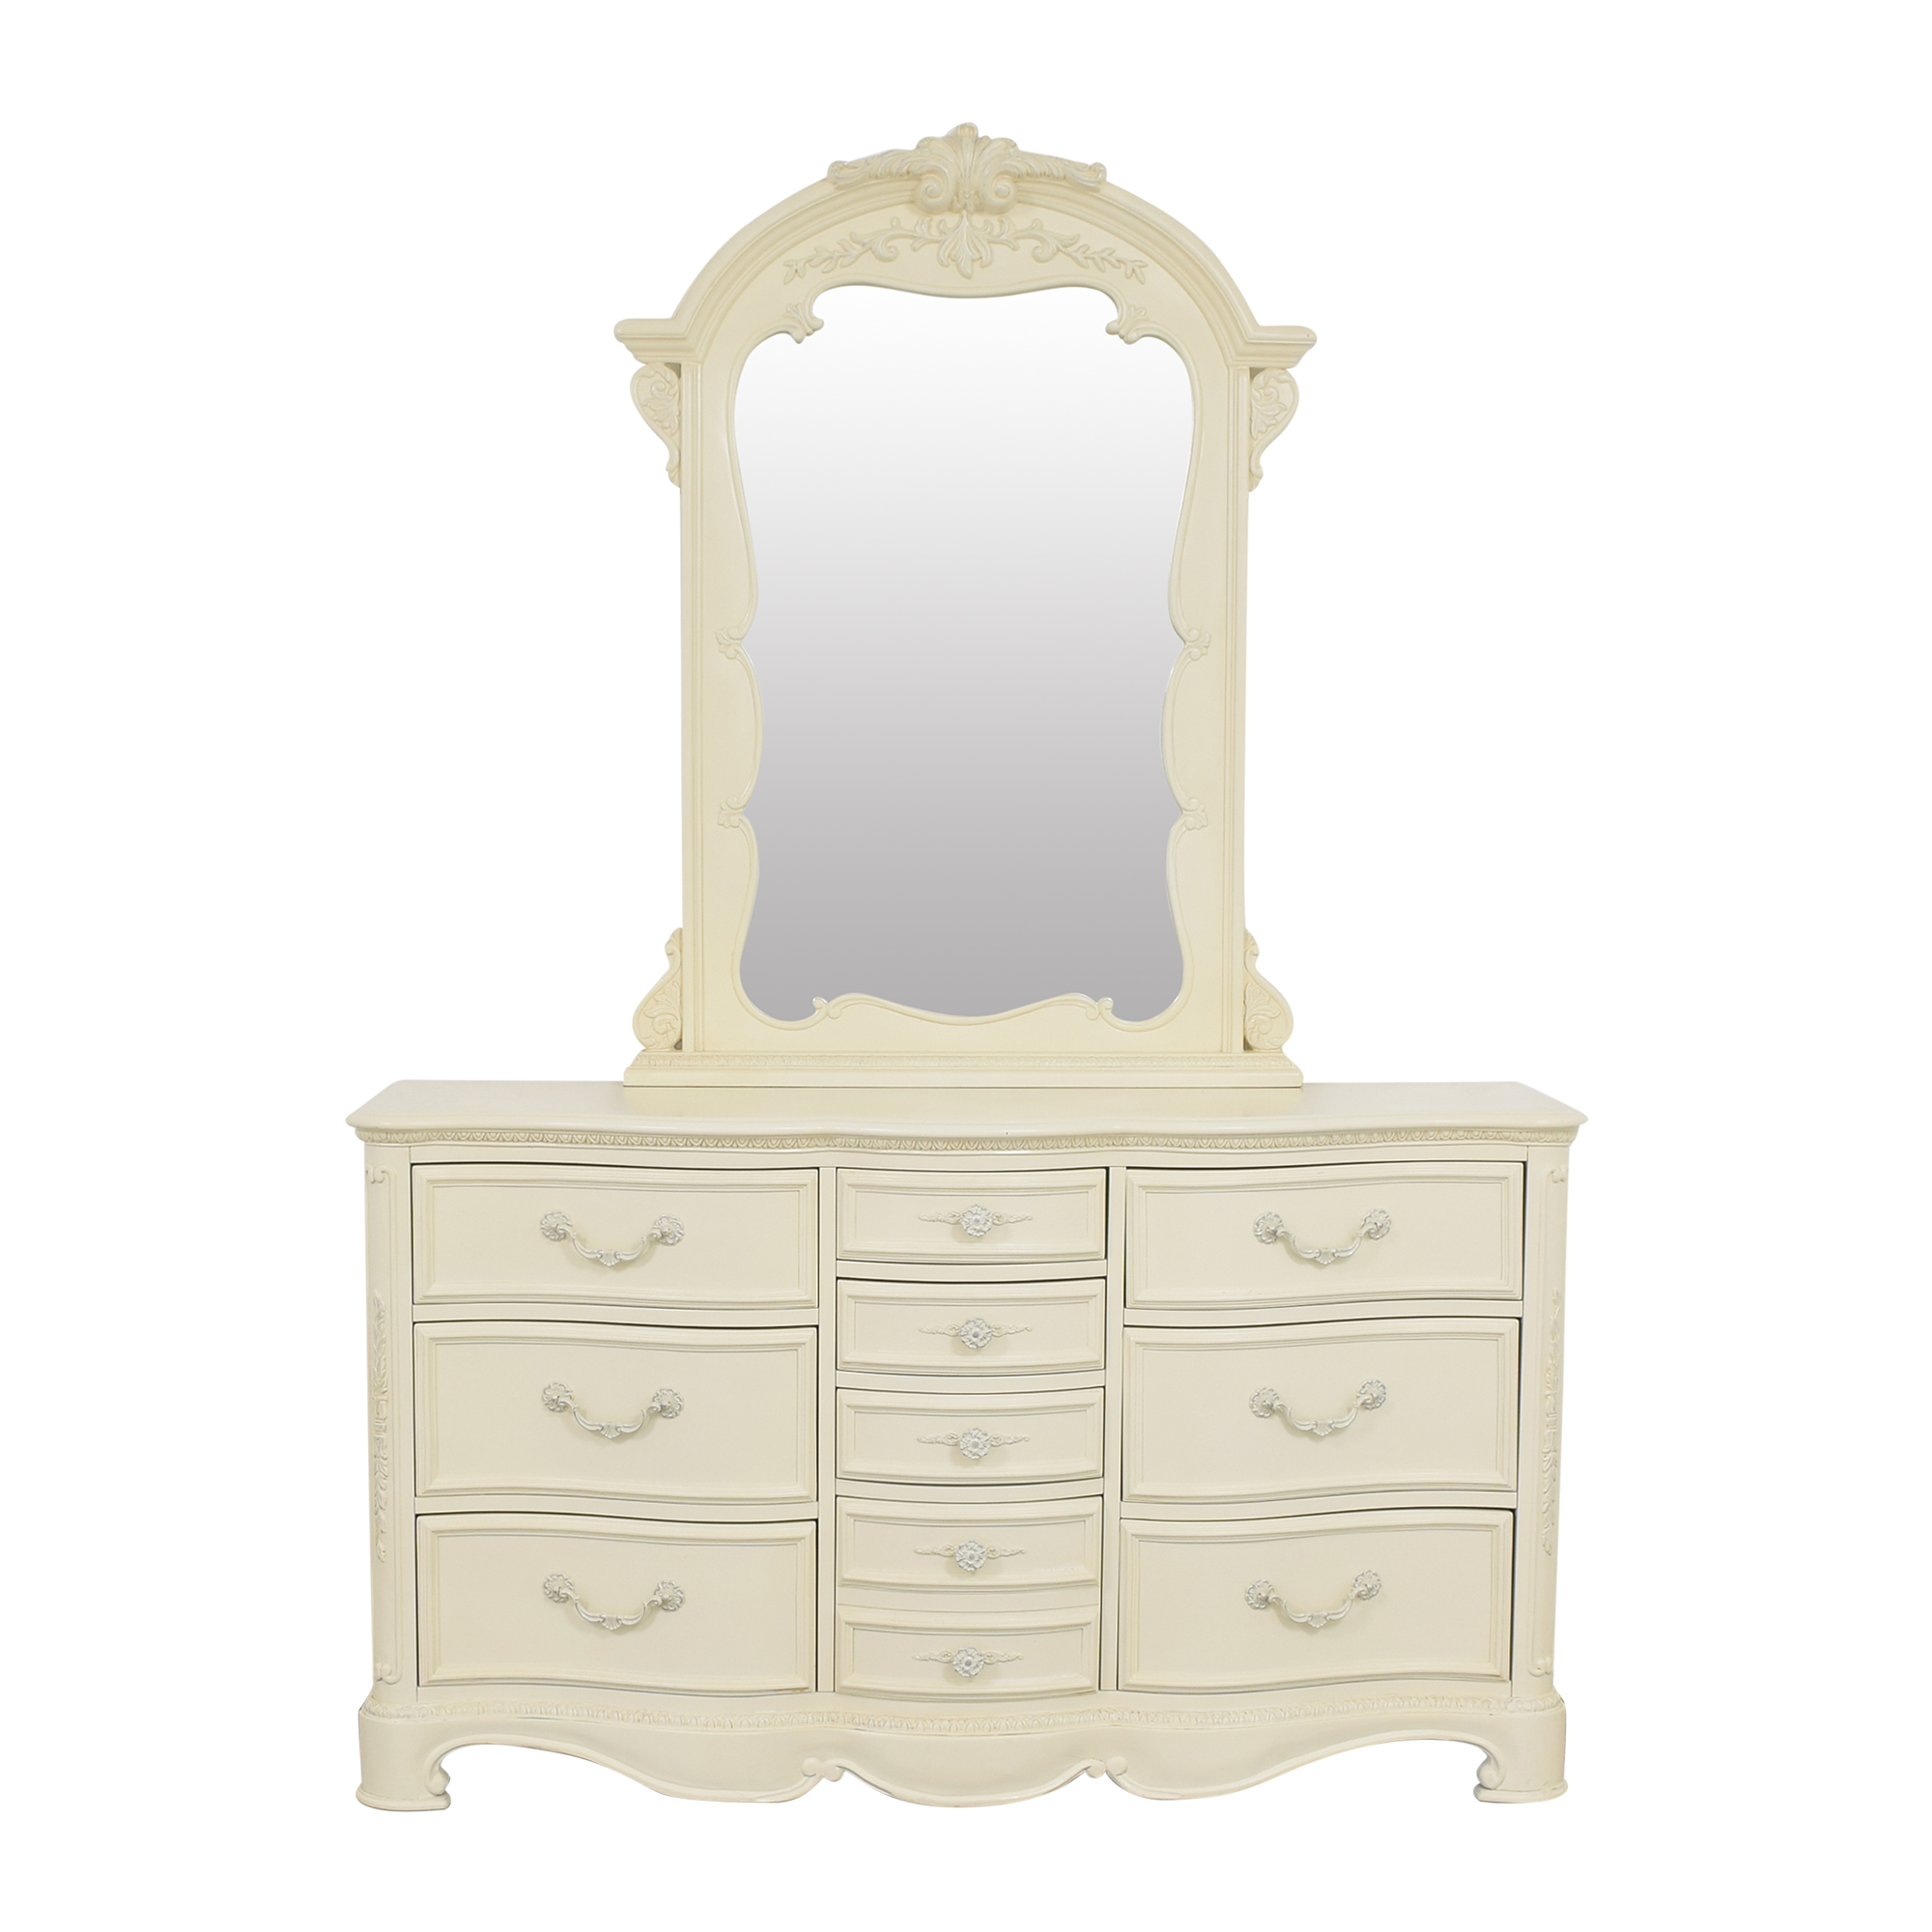 buy Lea Furniture Lea Jessica McClintock Romance Dresser With Mirror online